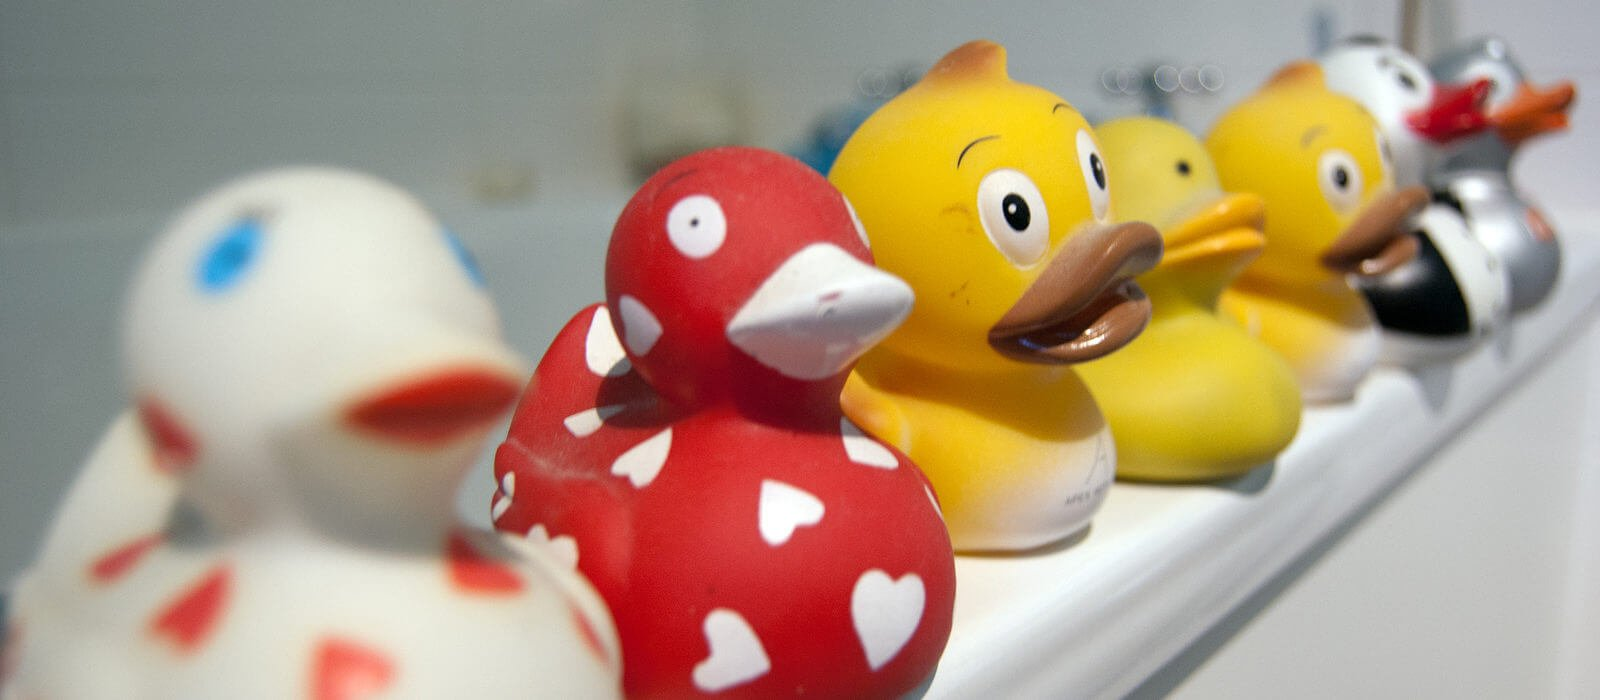 Colorful colorful duck toys standing in a row